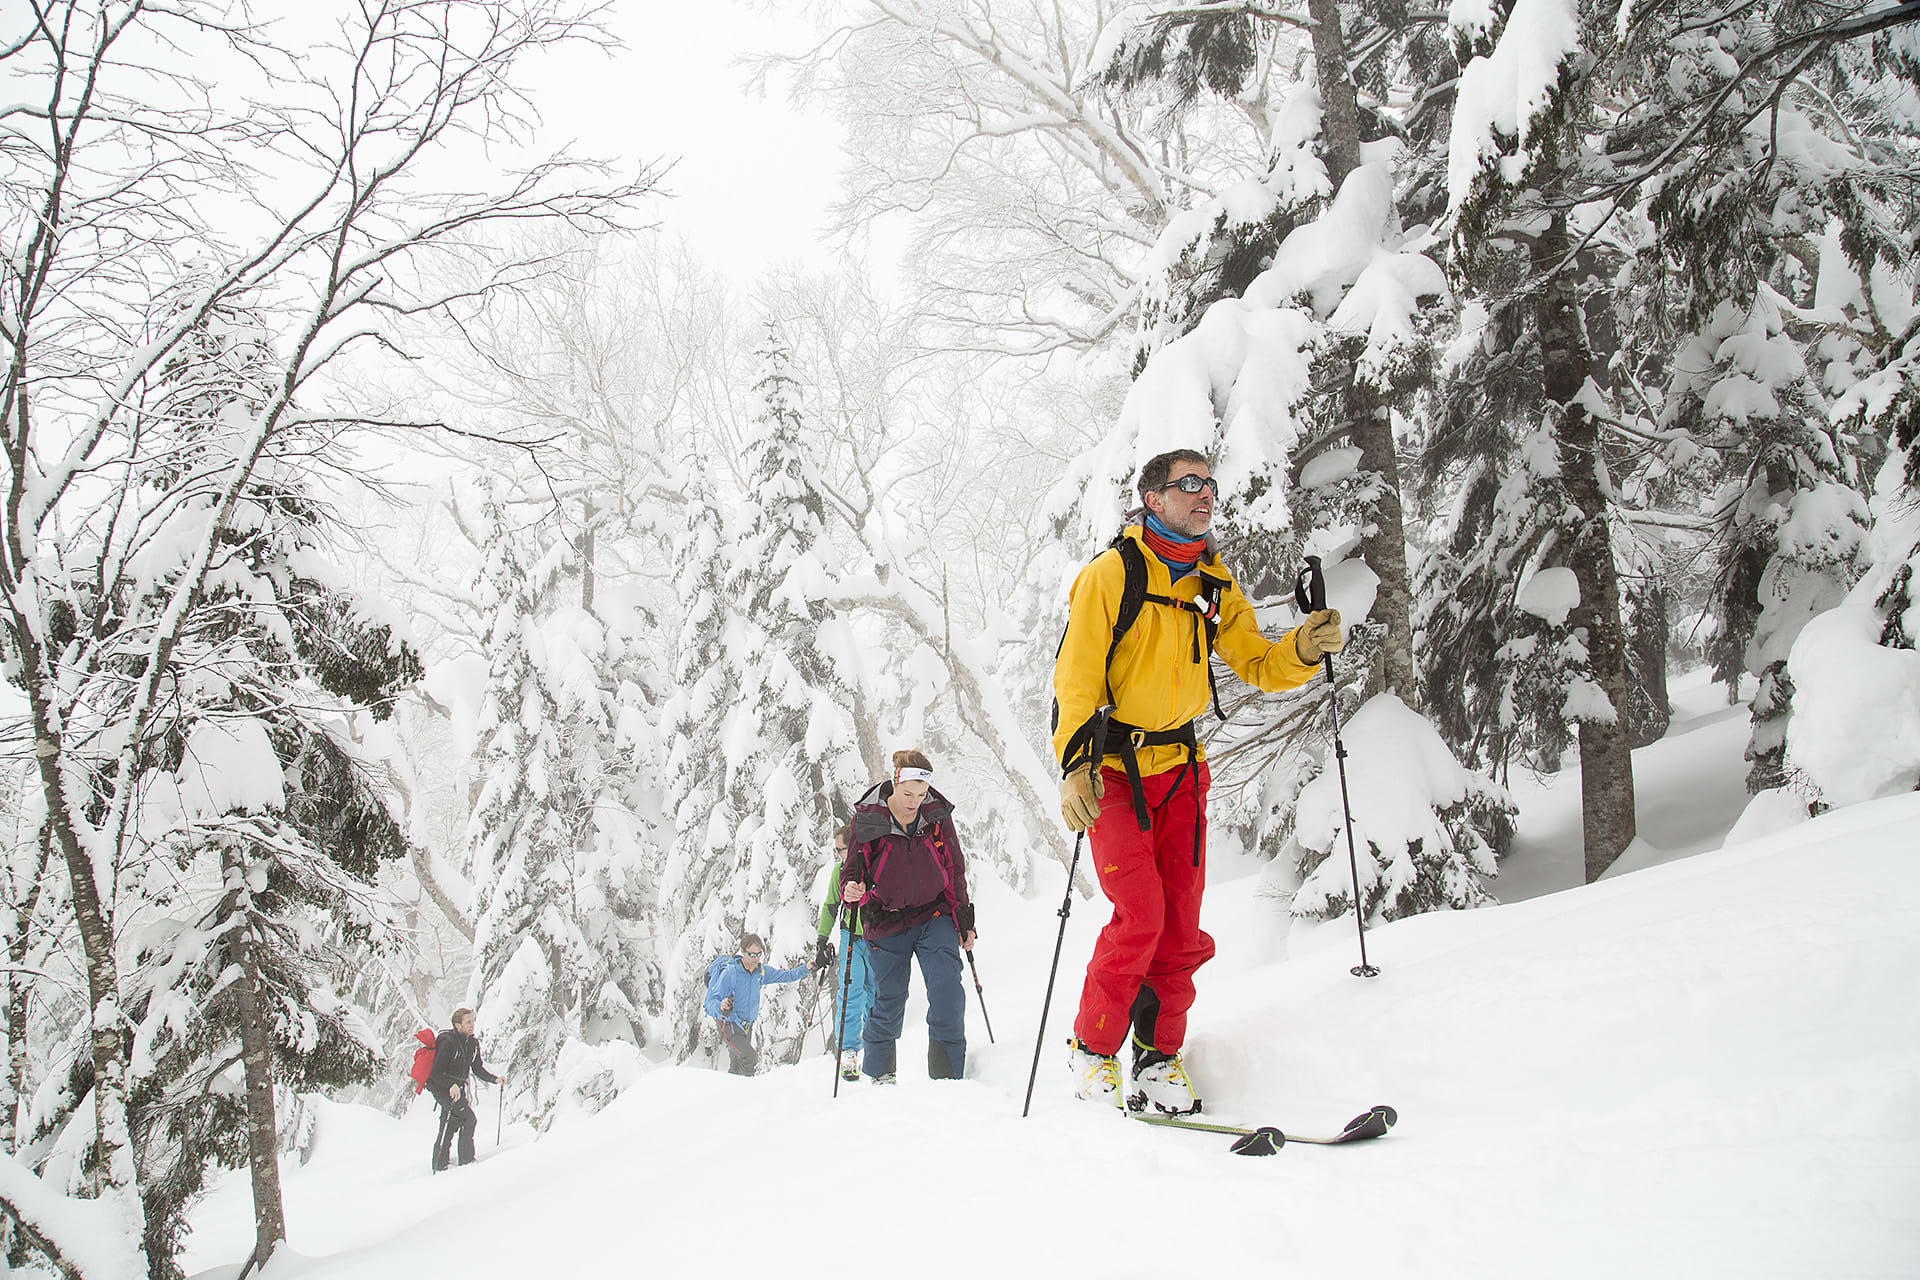 Mountain guide Christian Edelstam guides the group up through snow-laden trees.